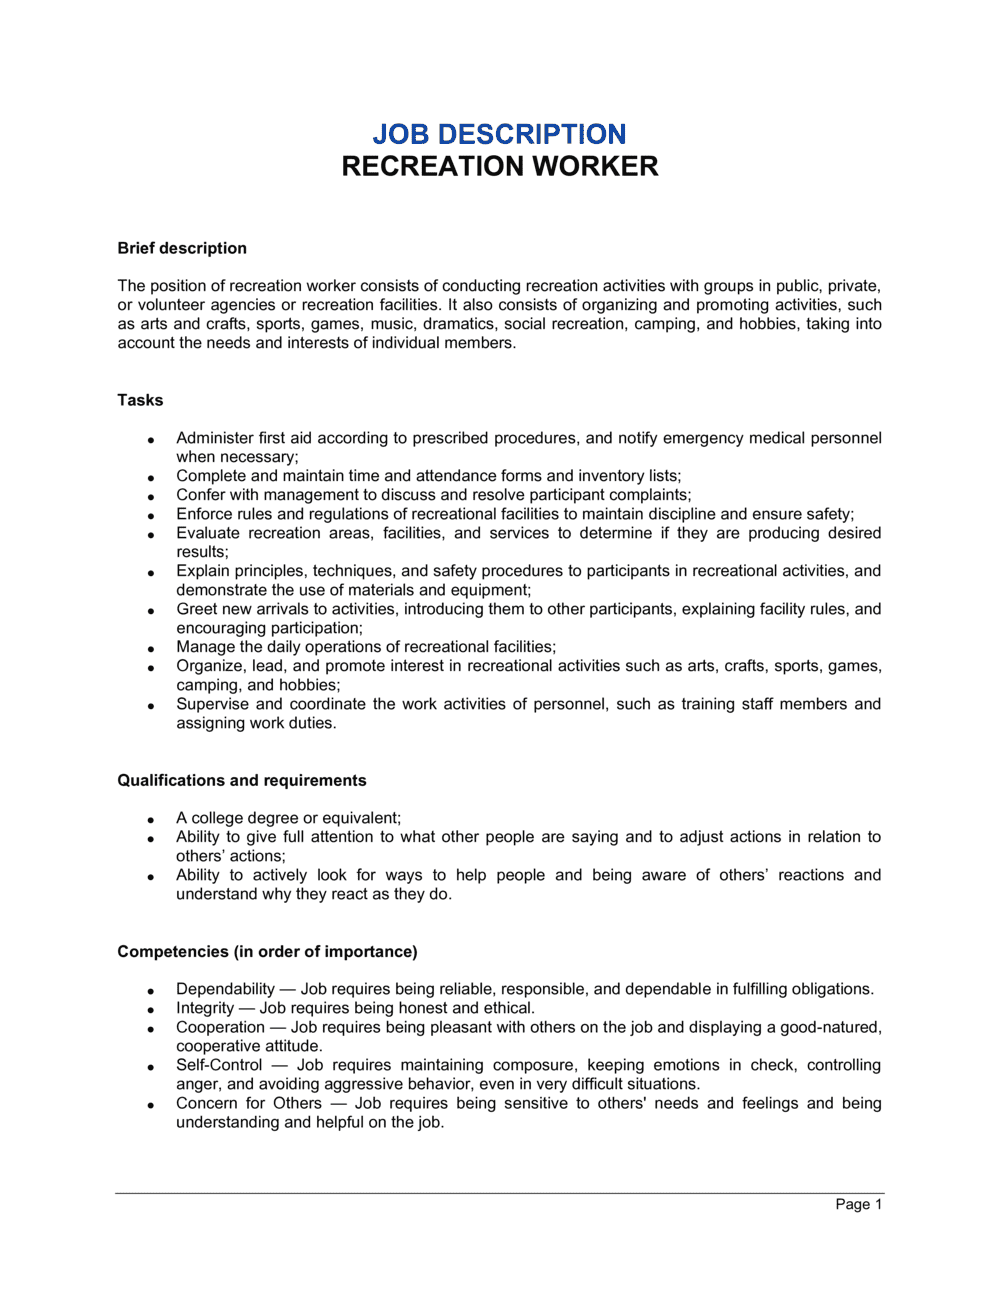 Business-in-a-Box's Recreation Worker Job Description Template